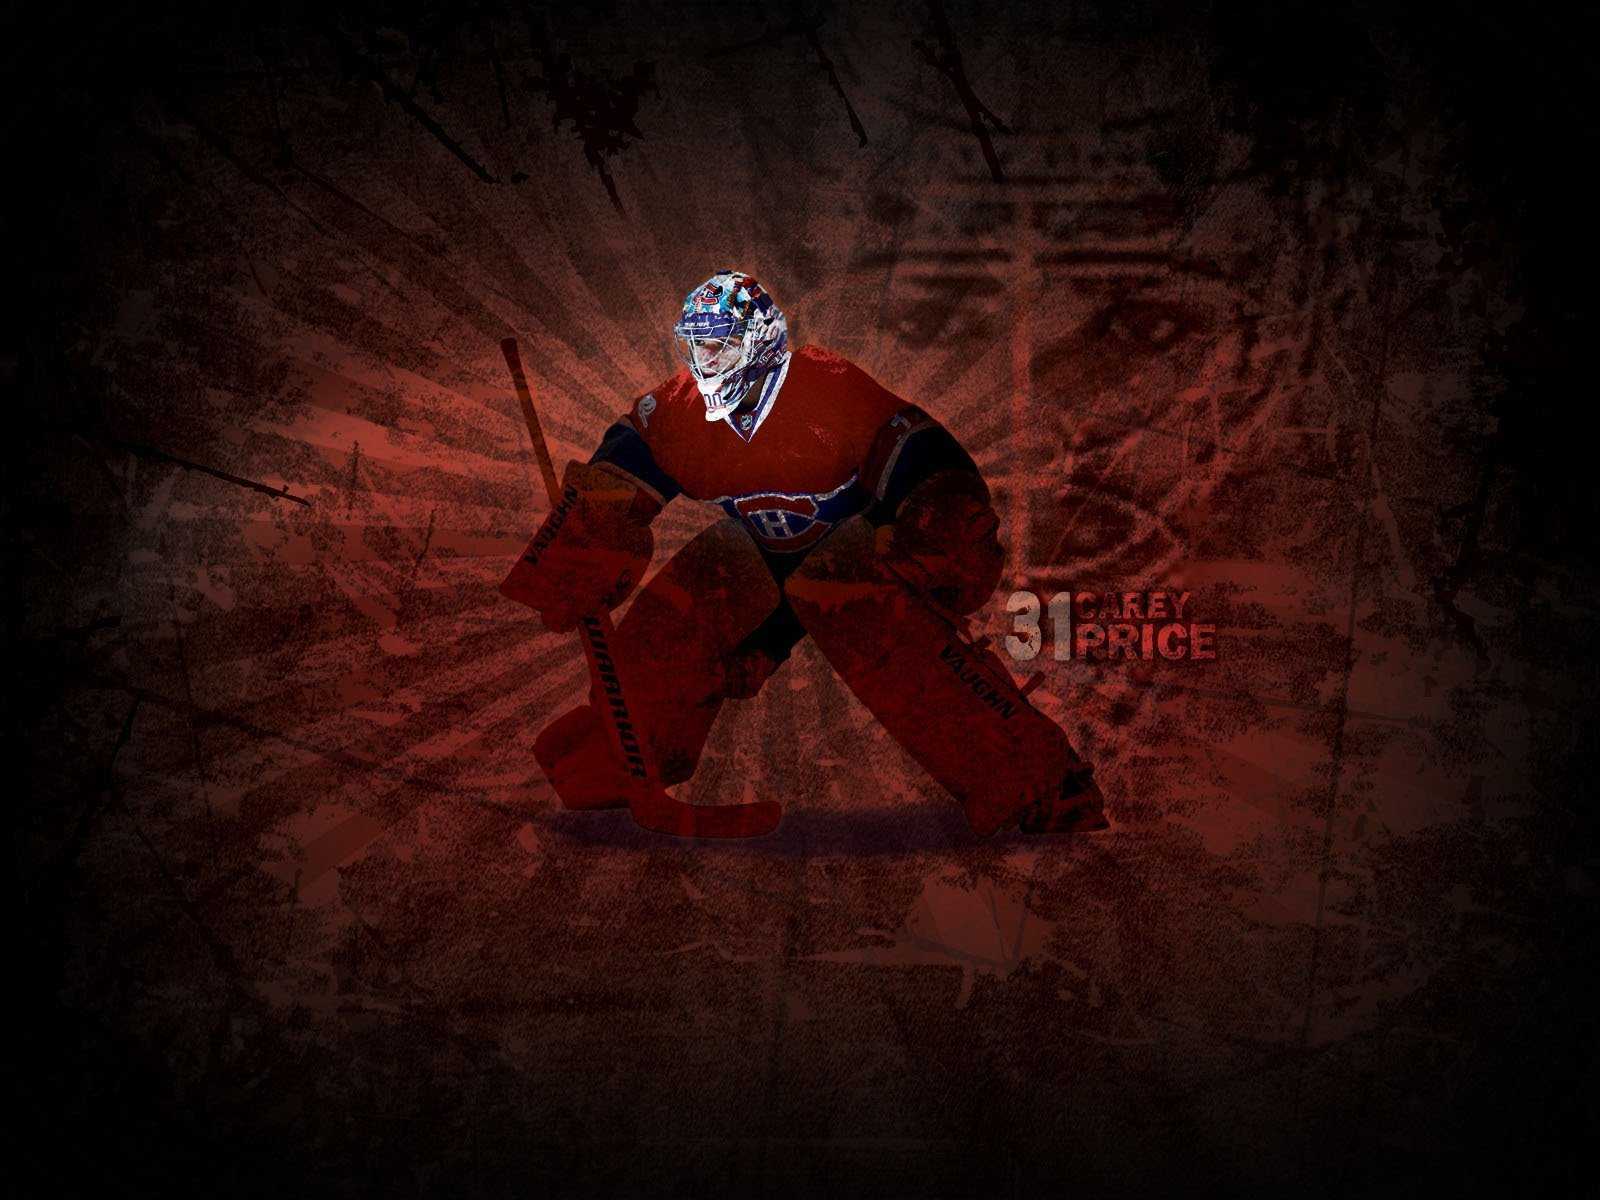 Carey price wallpapers montreal habs montreal hockey 9 html code - Montreal Canadiens Nhl Hockey 82 Wallpaper 1600x1200